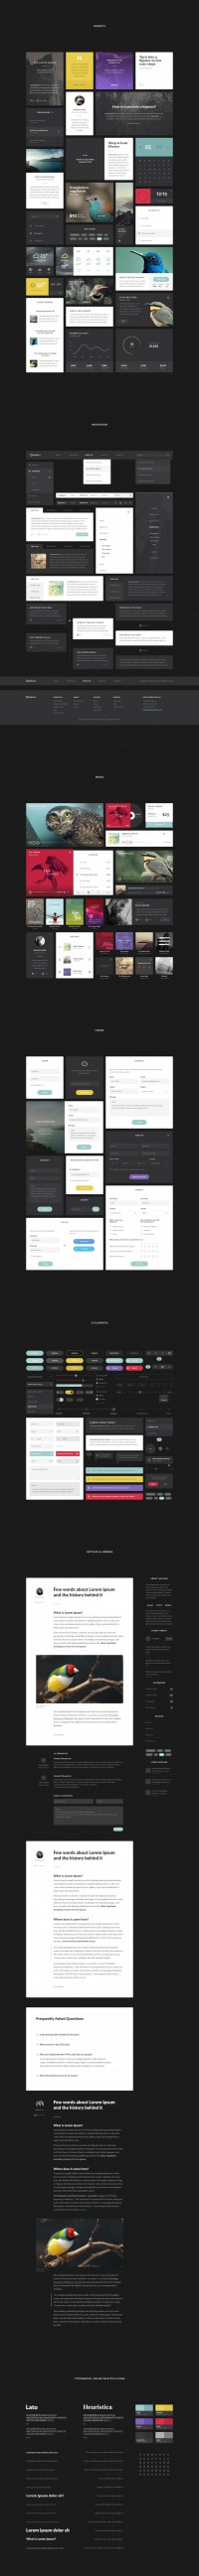 Aves UI Kit on Inspirationde